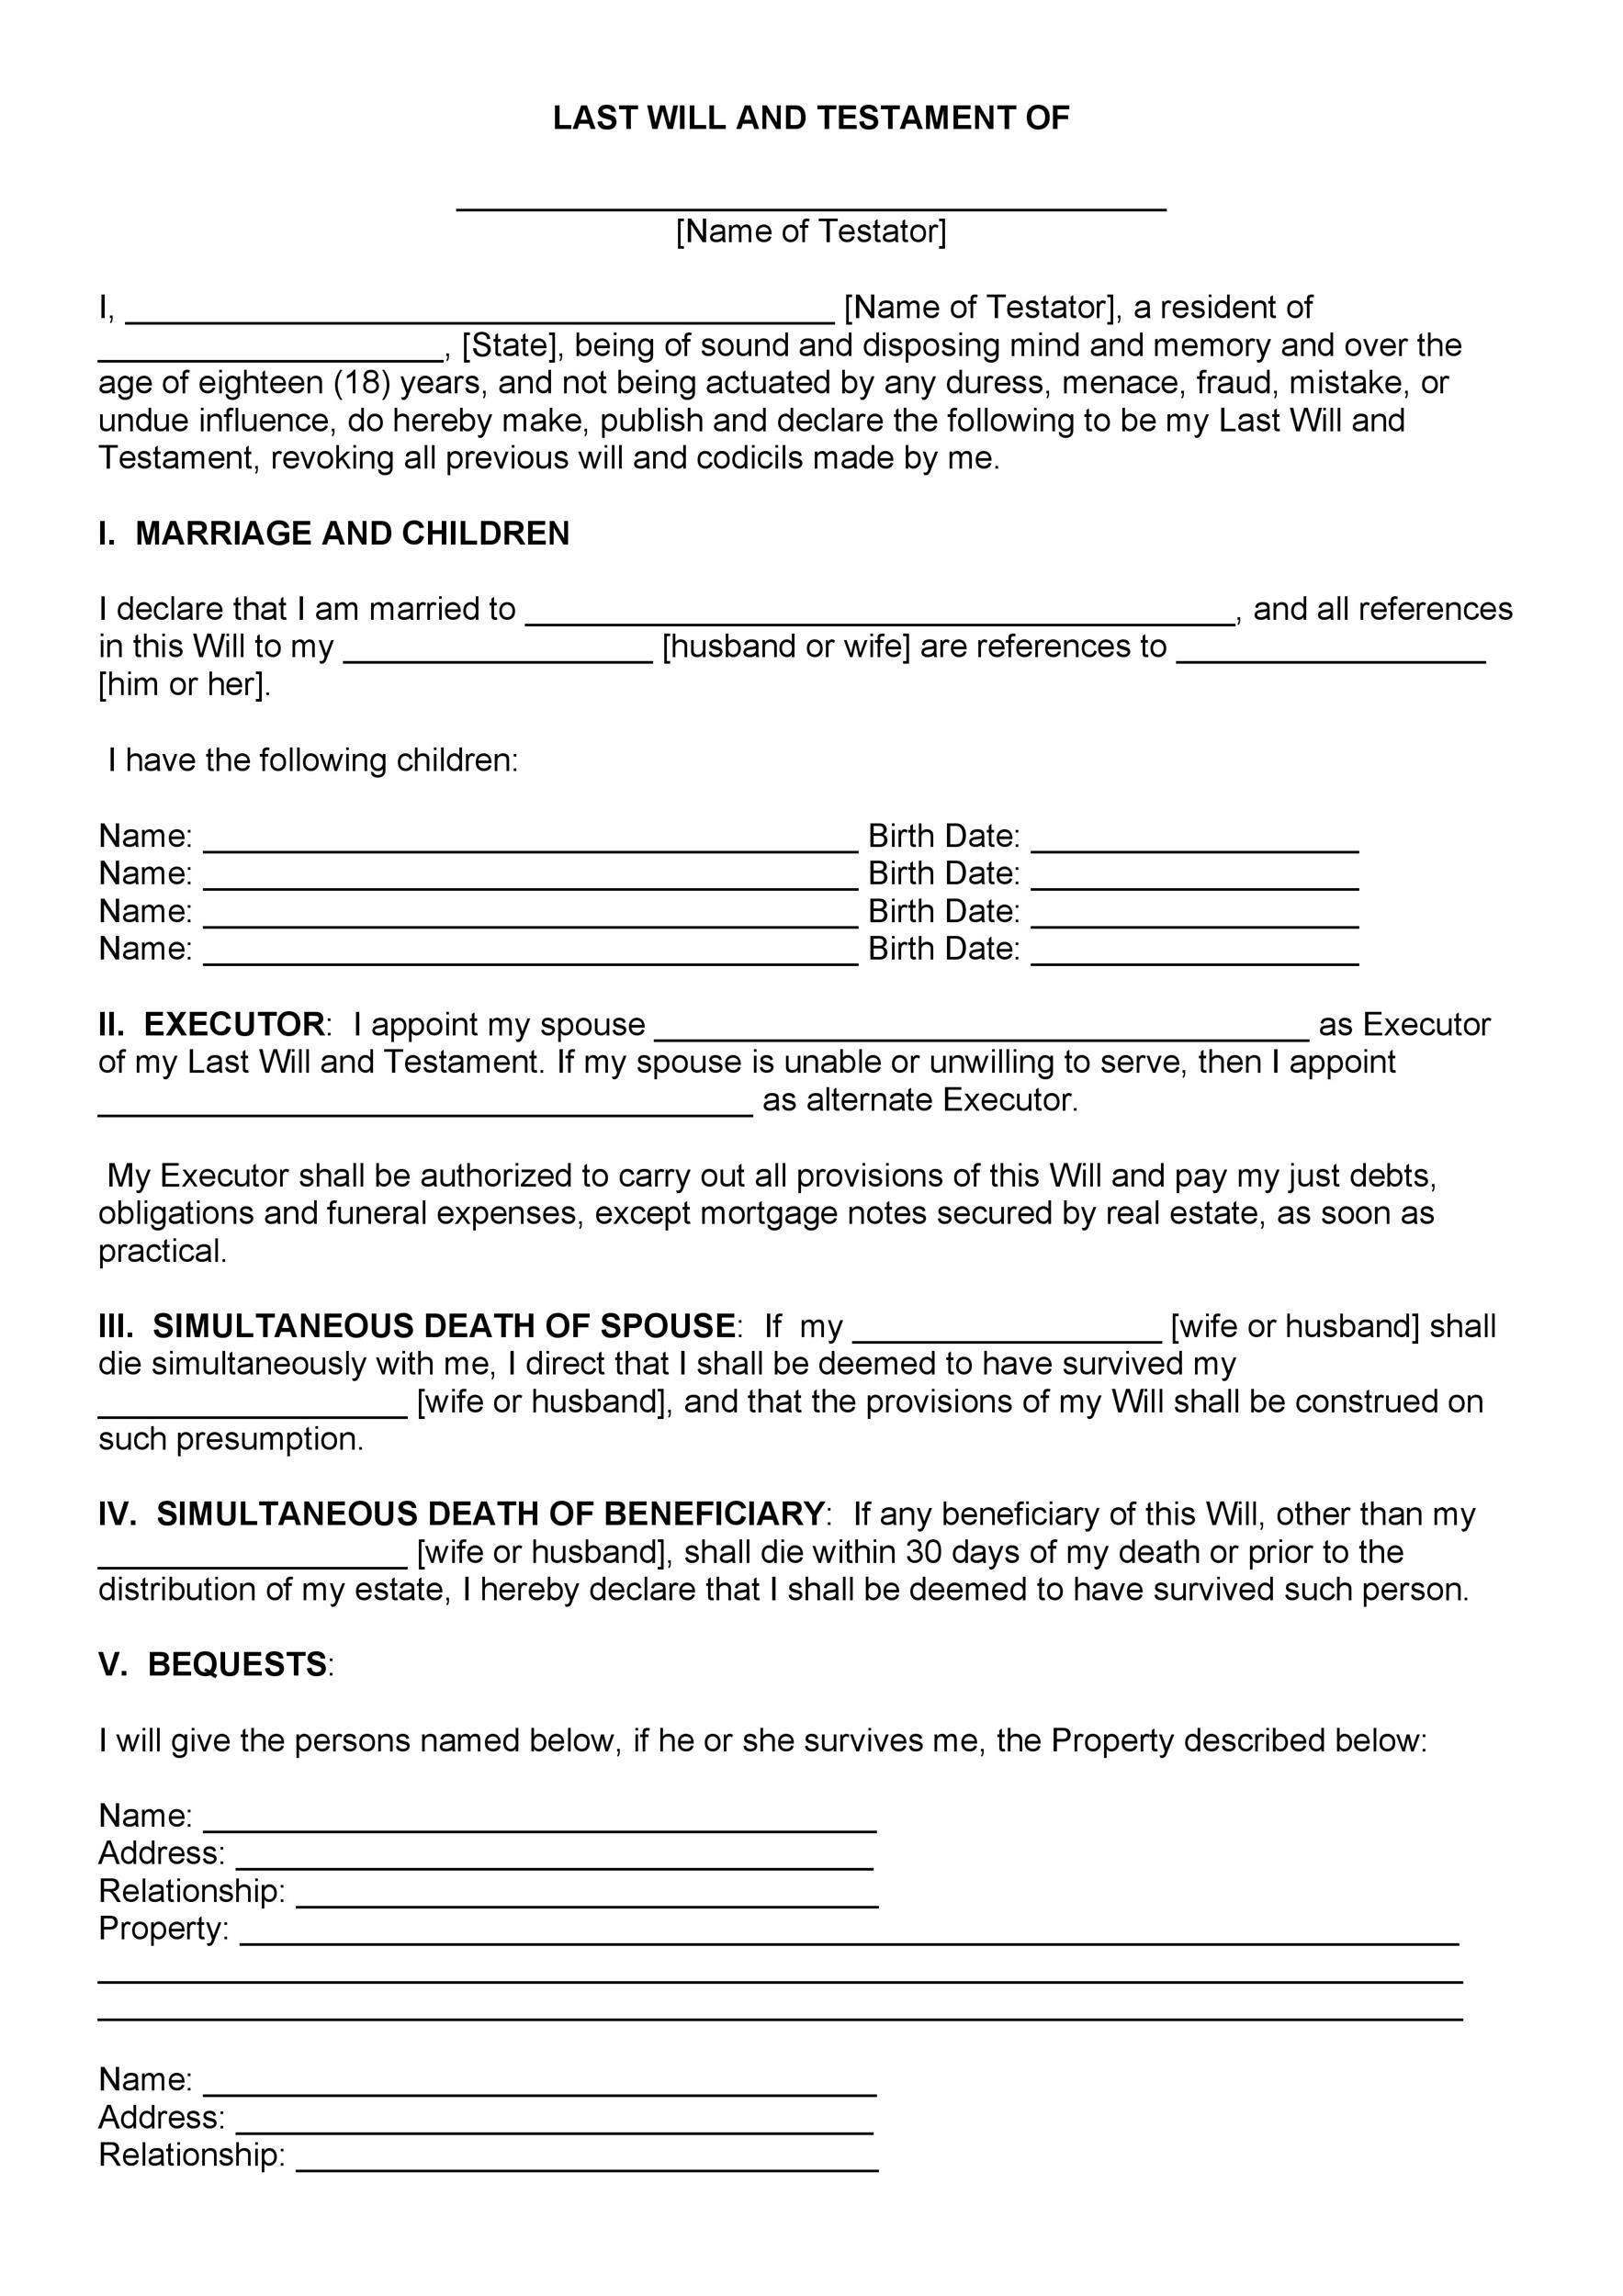 Last Will And Testament Forms Templates Template Lab - Make a will for free template